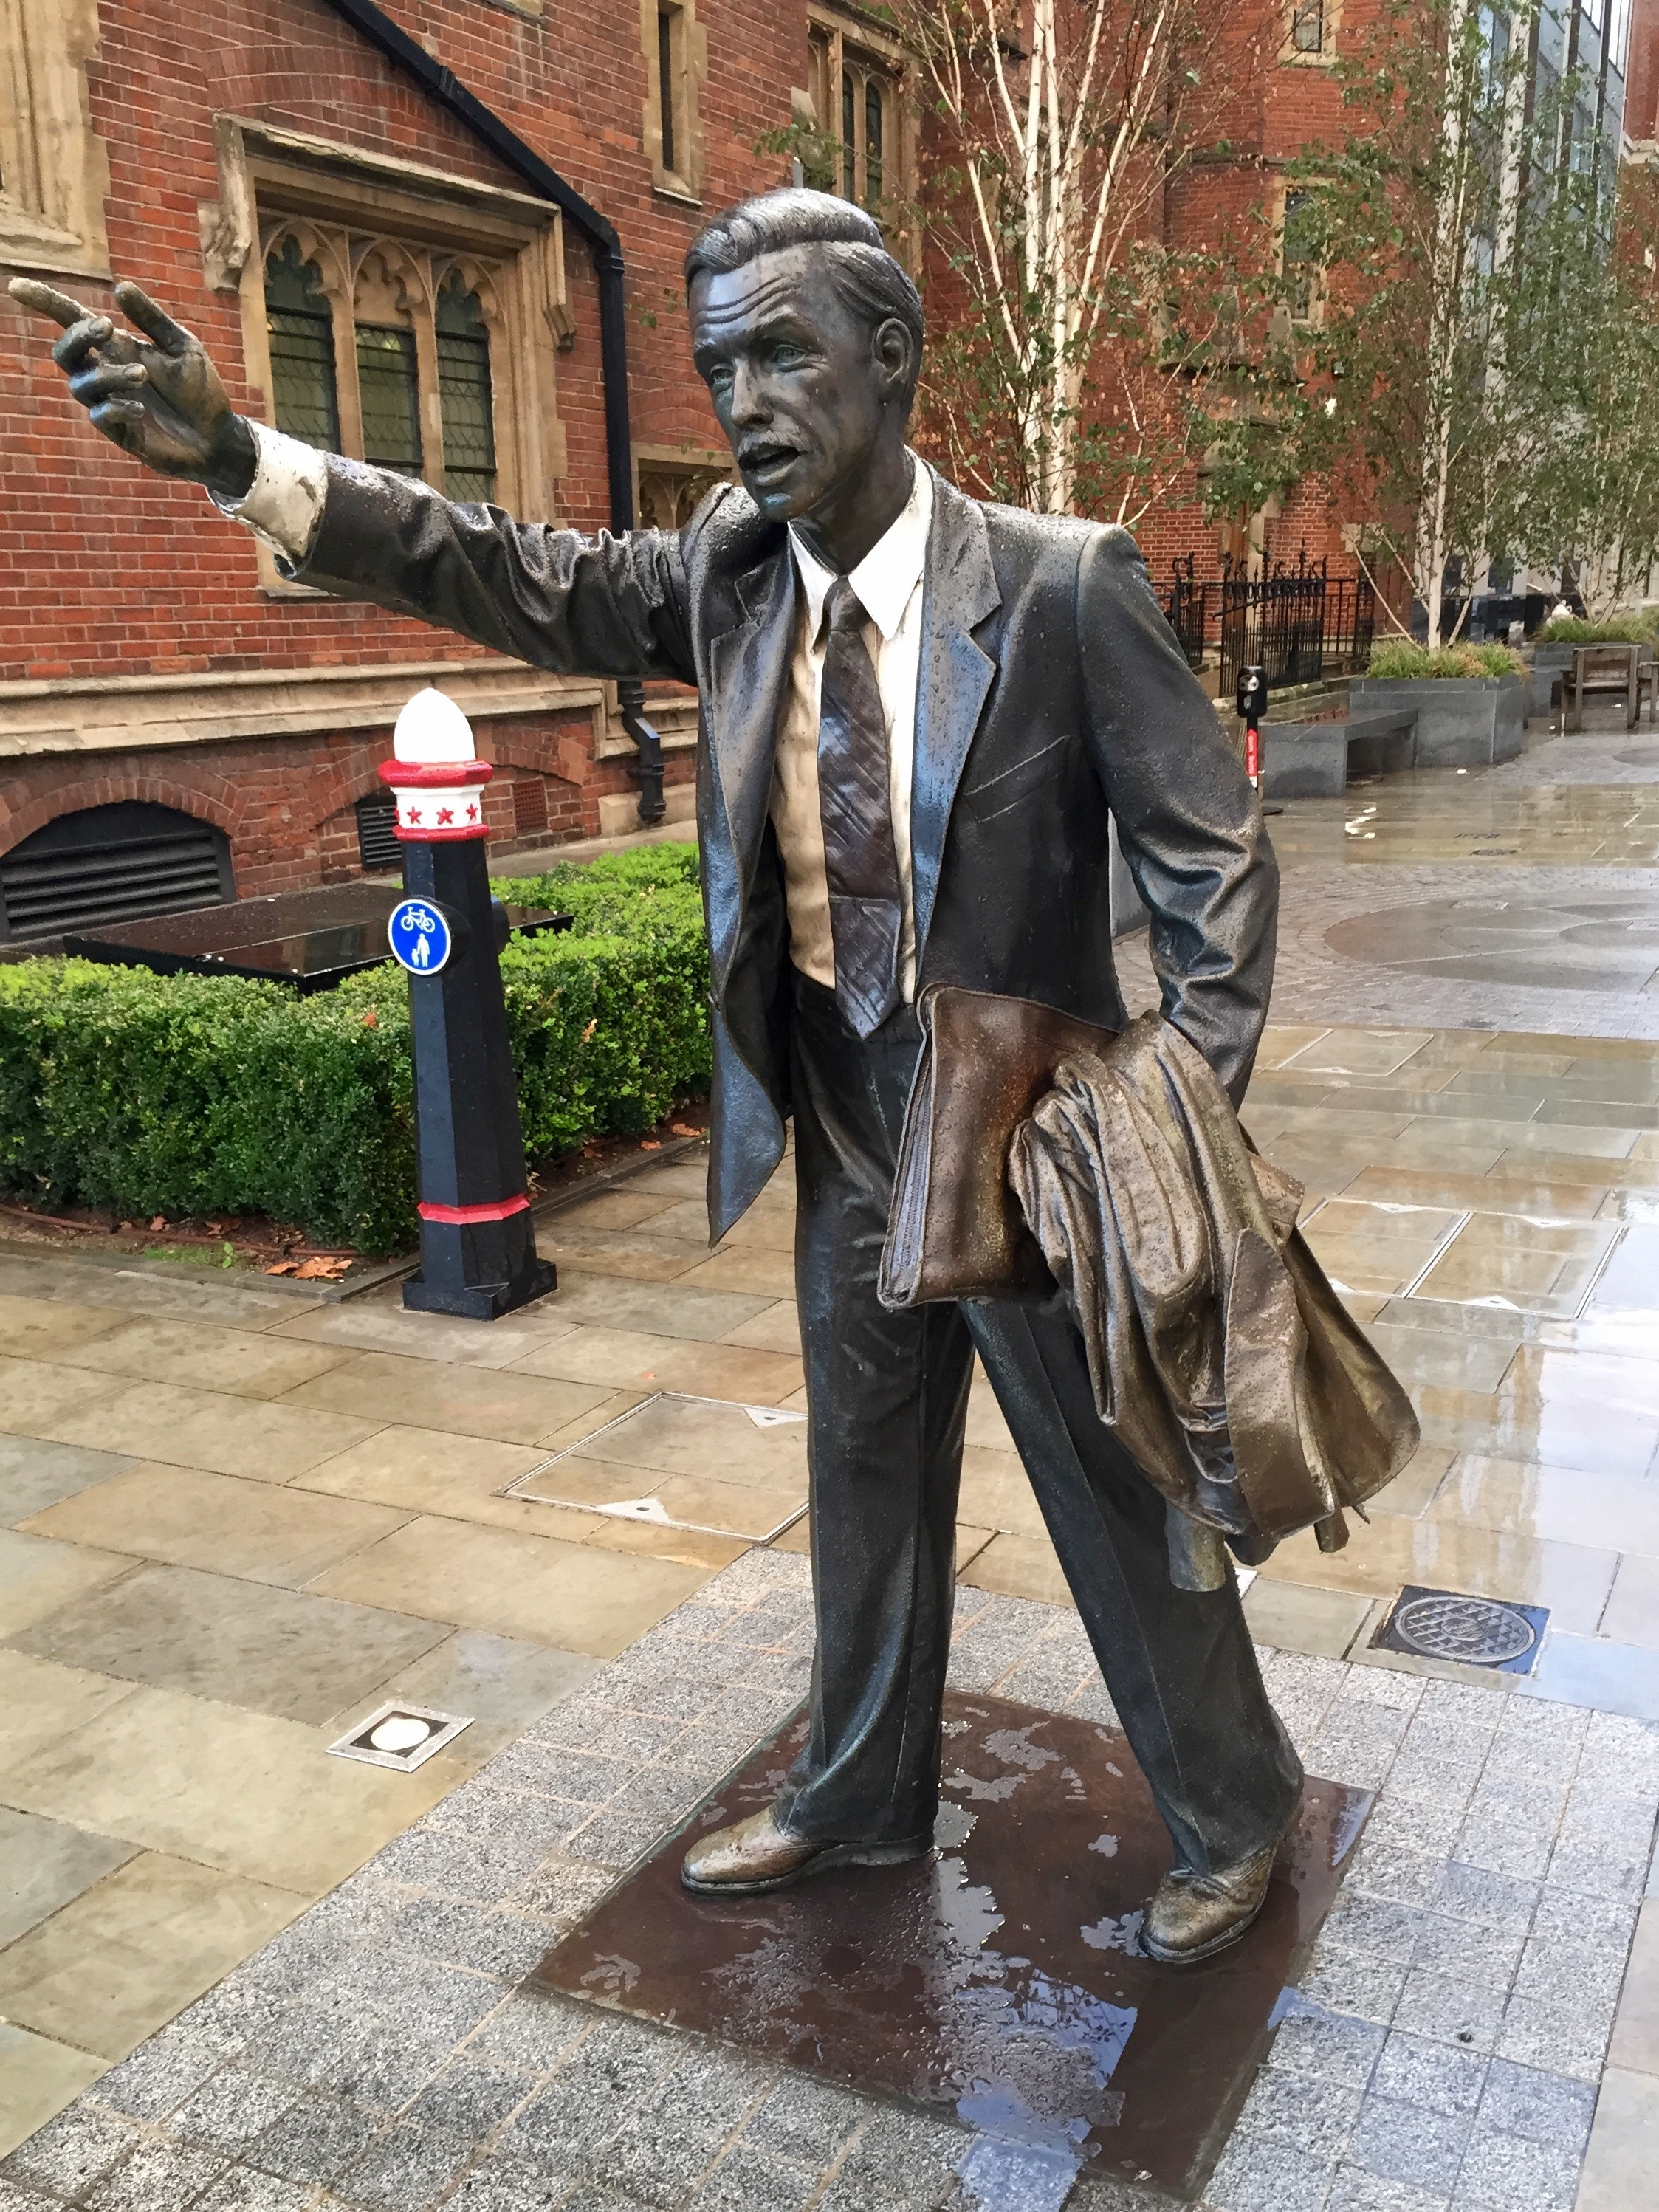 Taxi this is just to say for John seward johnson